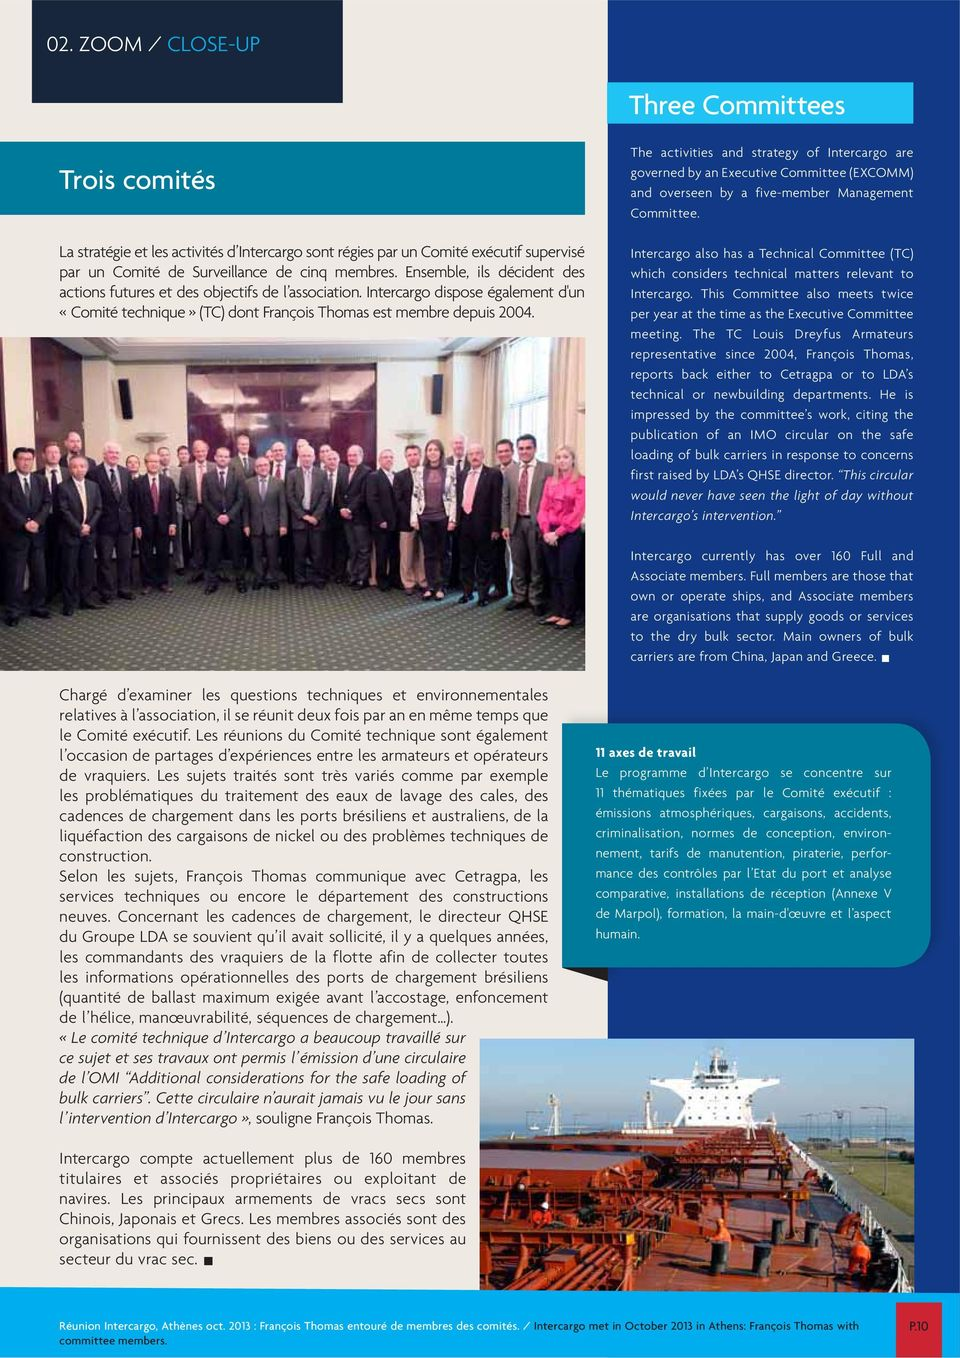 The activities and strategy of Intercargo are governed by an Executive Committee (EXCOMM) and overseen by a five-member Management Committee.